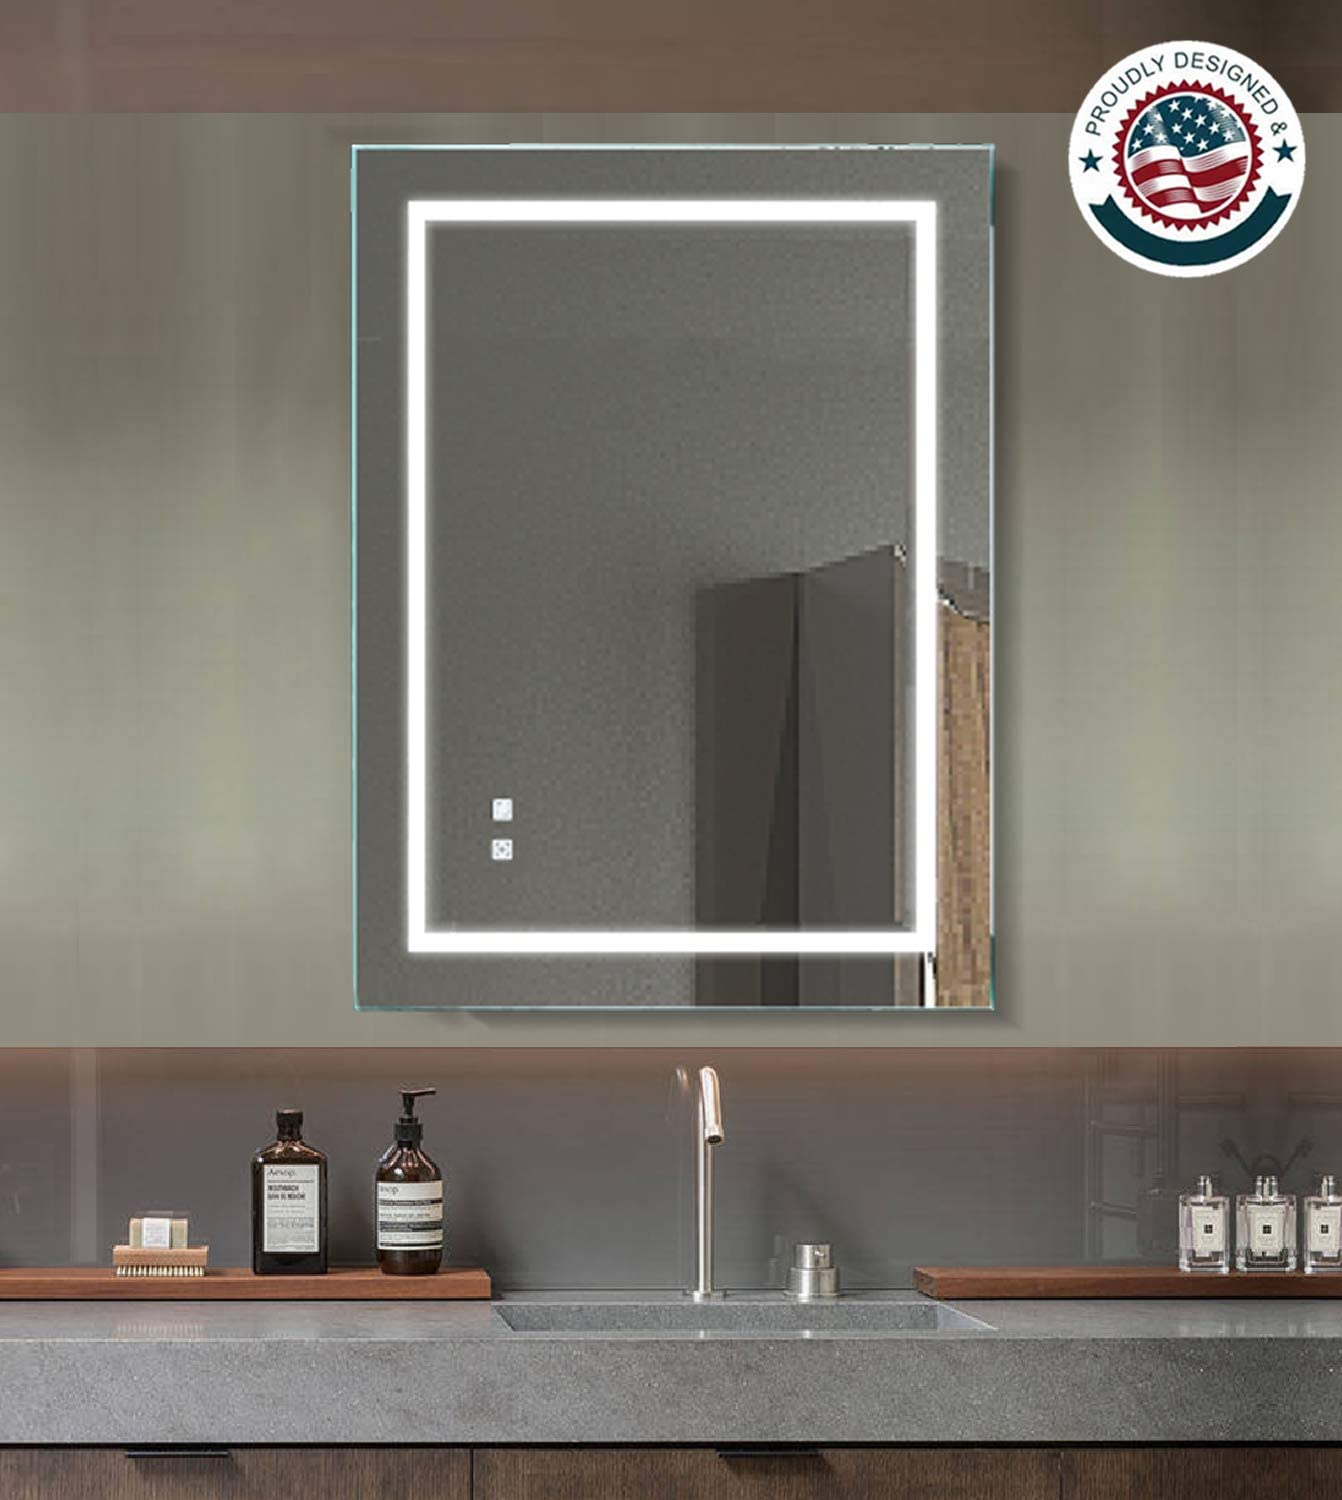 ExBrite LED Lighted Bathroom Mirror, 36 x 28 inch, Wall Mounted Illuminated Mirror, Anti fog, Dimmable, Touch Button, Slim, 90 CRI, ETL listed, Both Vertical Horizontal Mounted Way